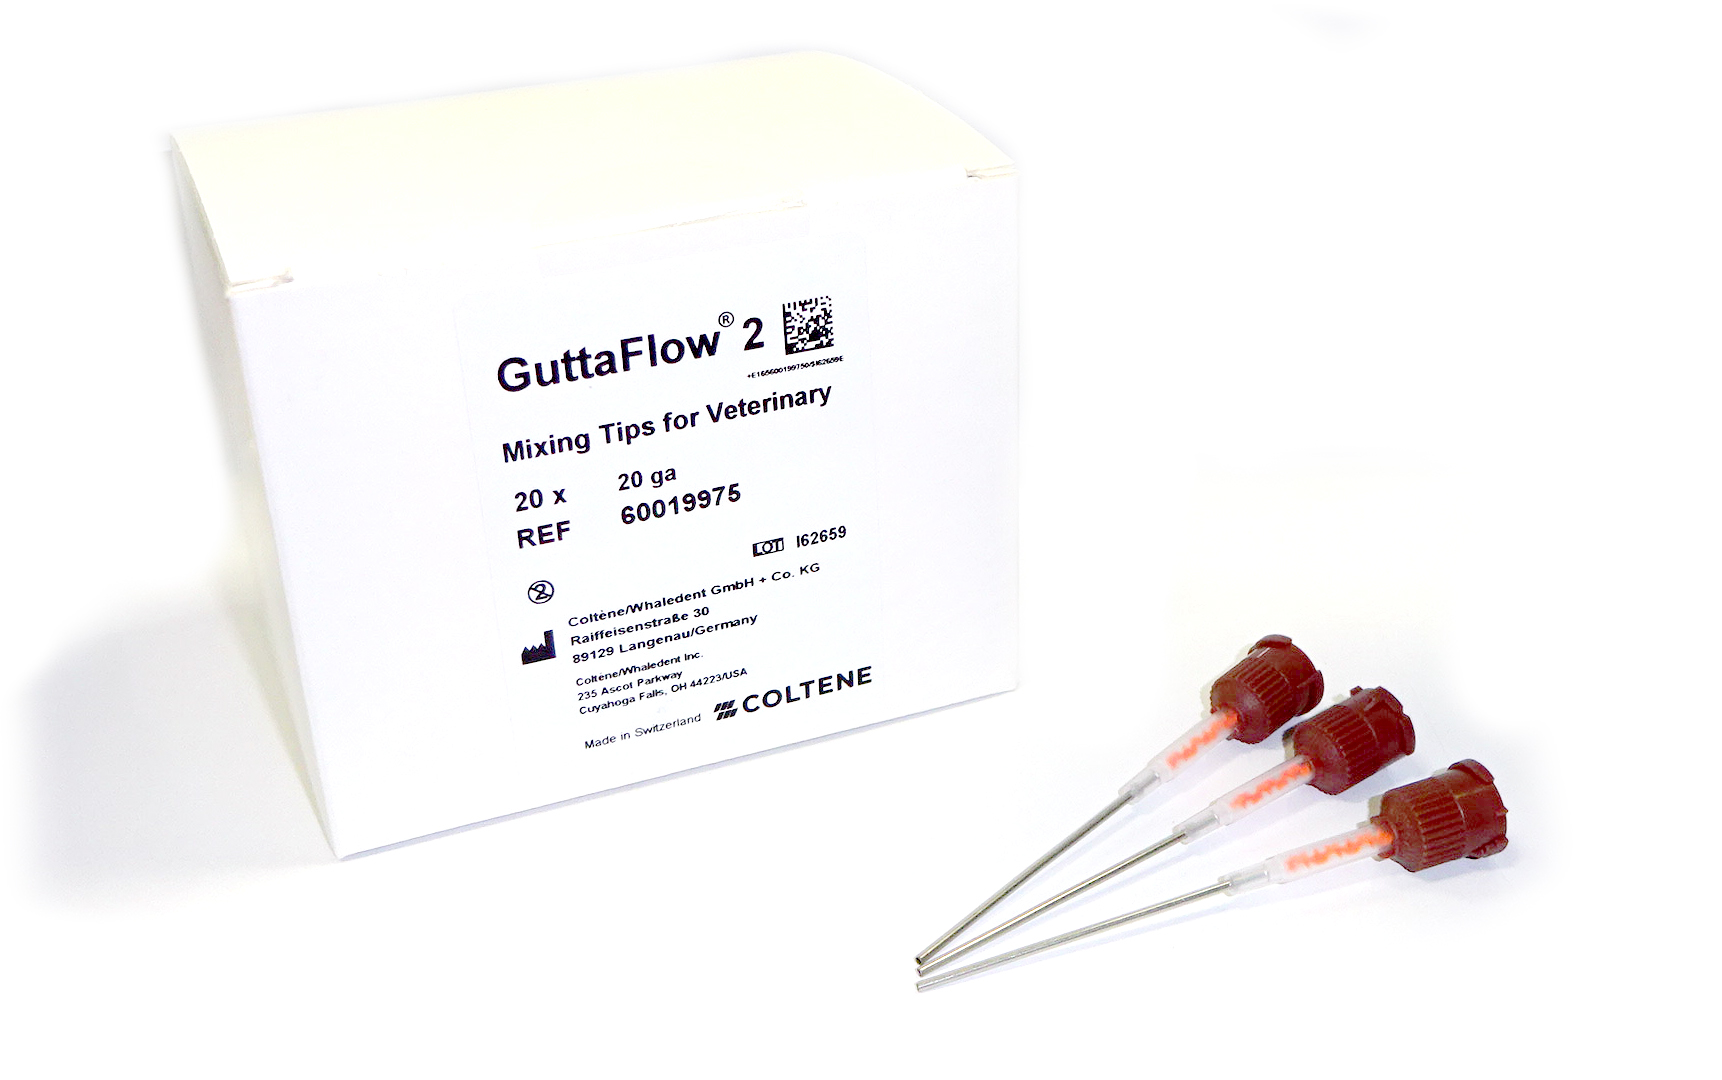 Roeko GuttaFlow 2 Veterinary 17ga  Mixing Tips (20pcs)